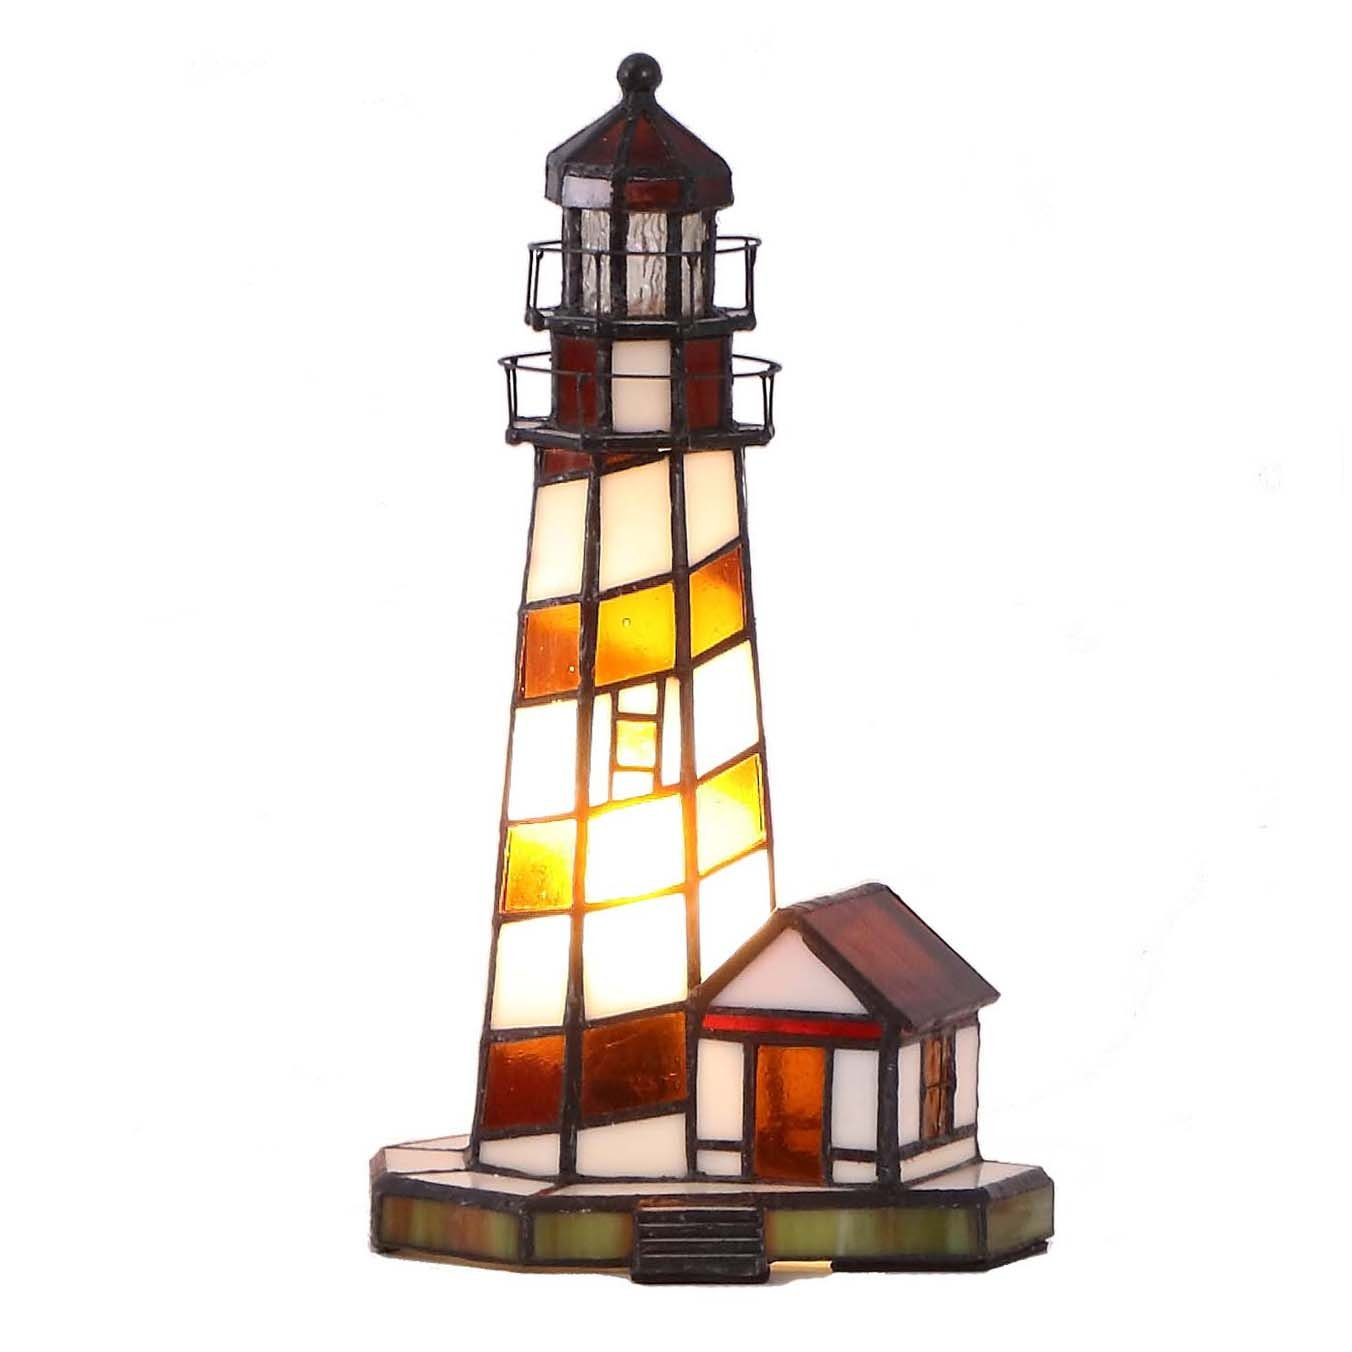 bieye inch lighthouse tiffany style stained glass accent meyda table lamps lamp night light tablecloth factory console with doors home decor accents girls desk ikea high top